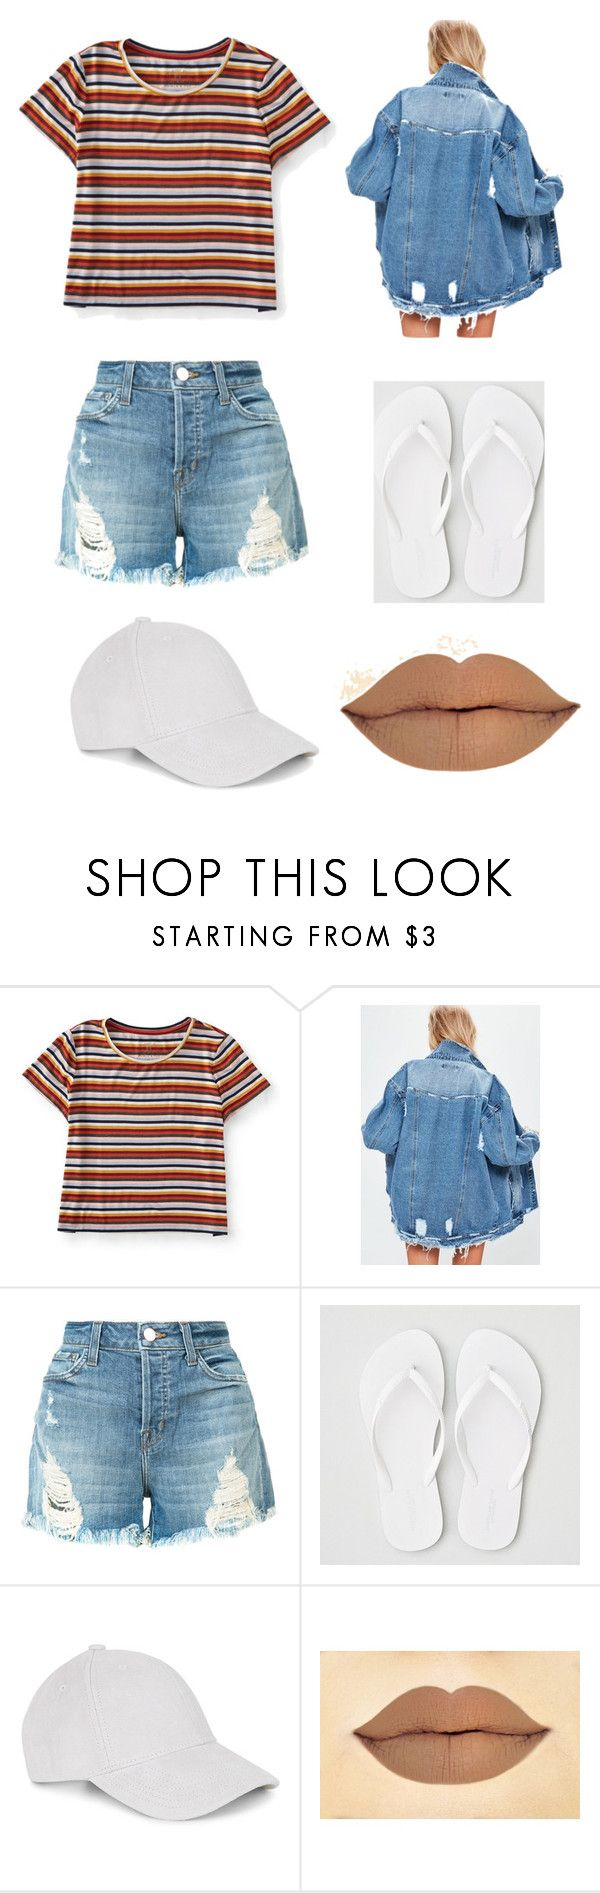 """sans"" by tiyati on Polyvore featuring Aéropostale, J Brand, American Eagle Outfitters and Le Amonie"